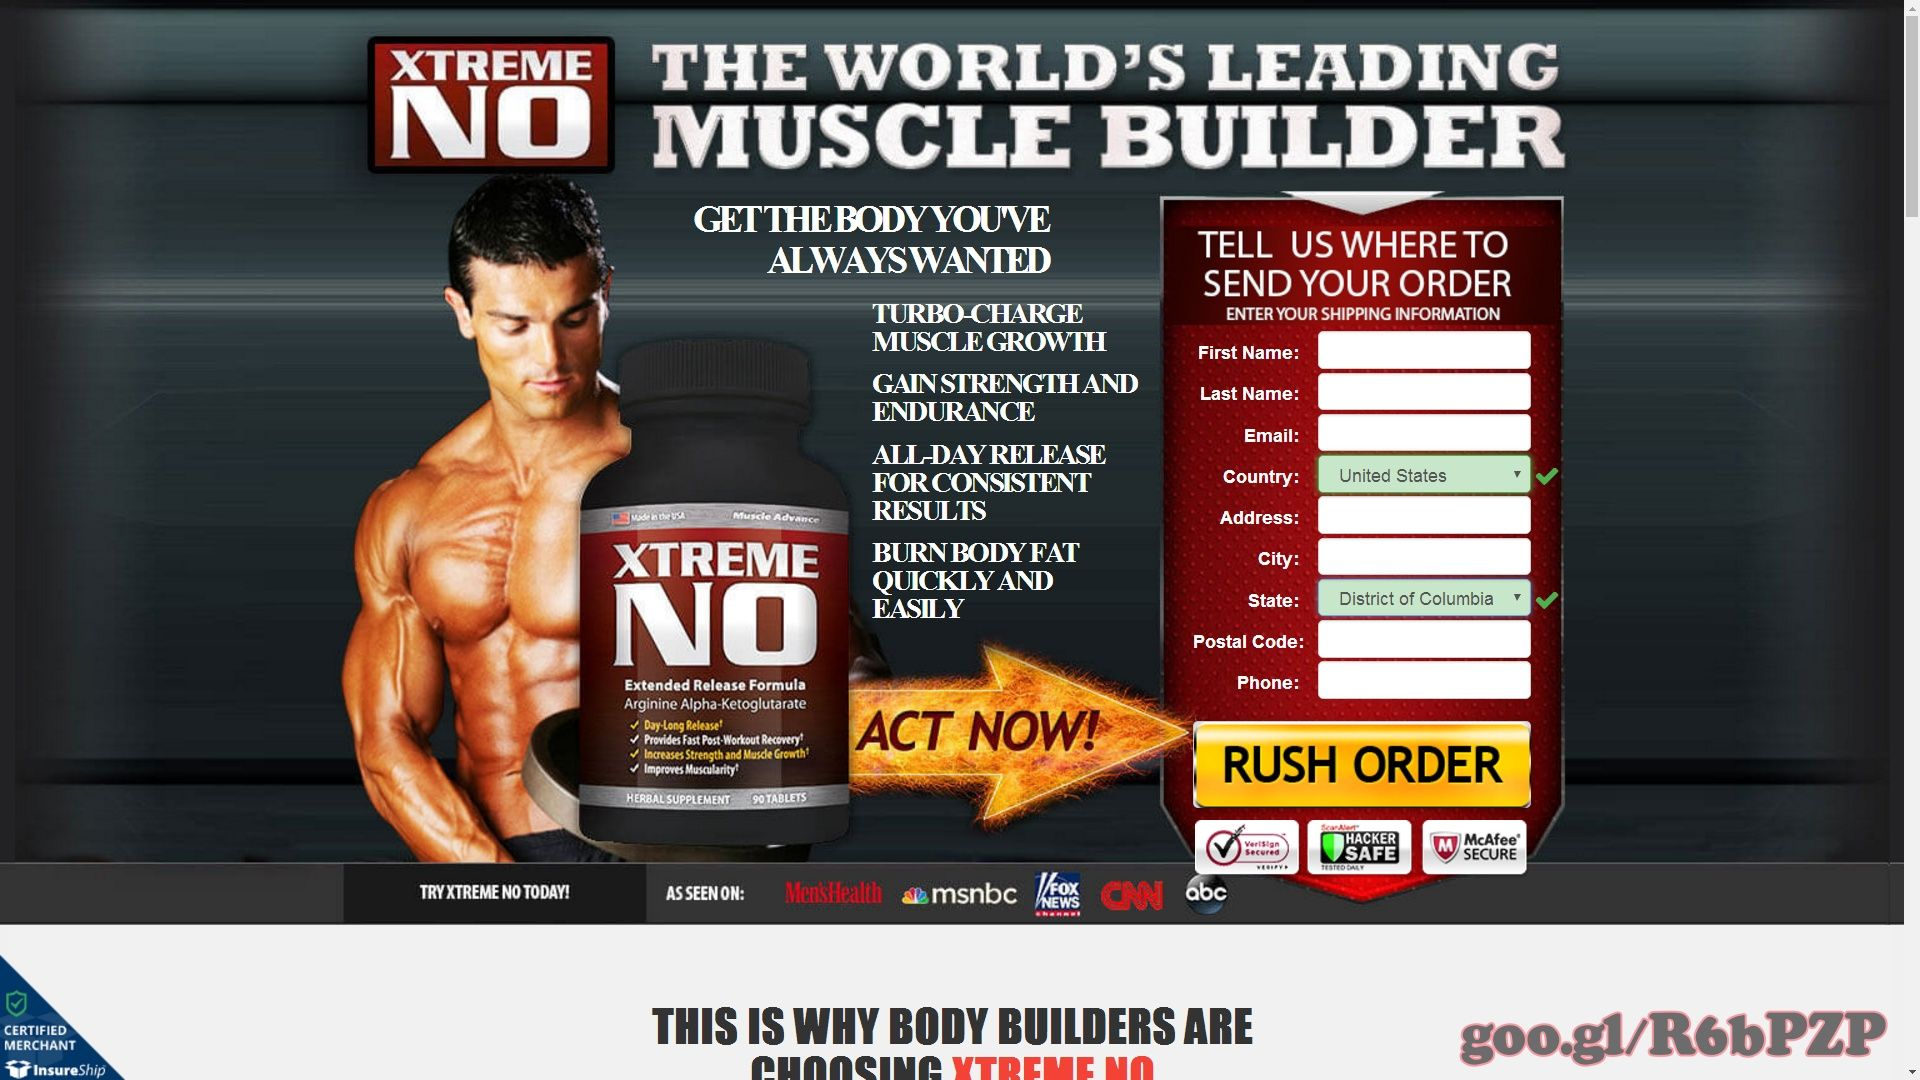 Xtremeno General Health Products Men S Health Sports Nutrition